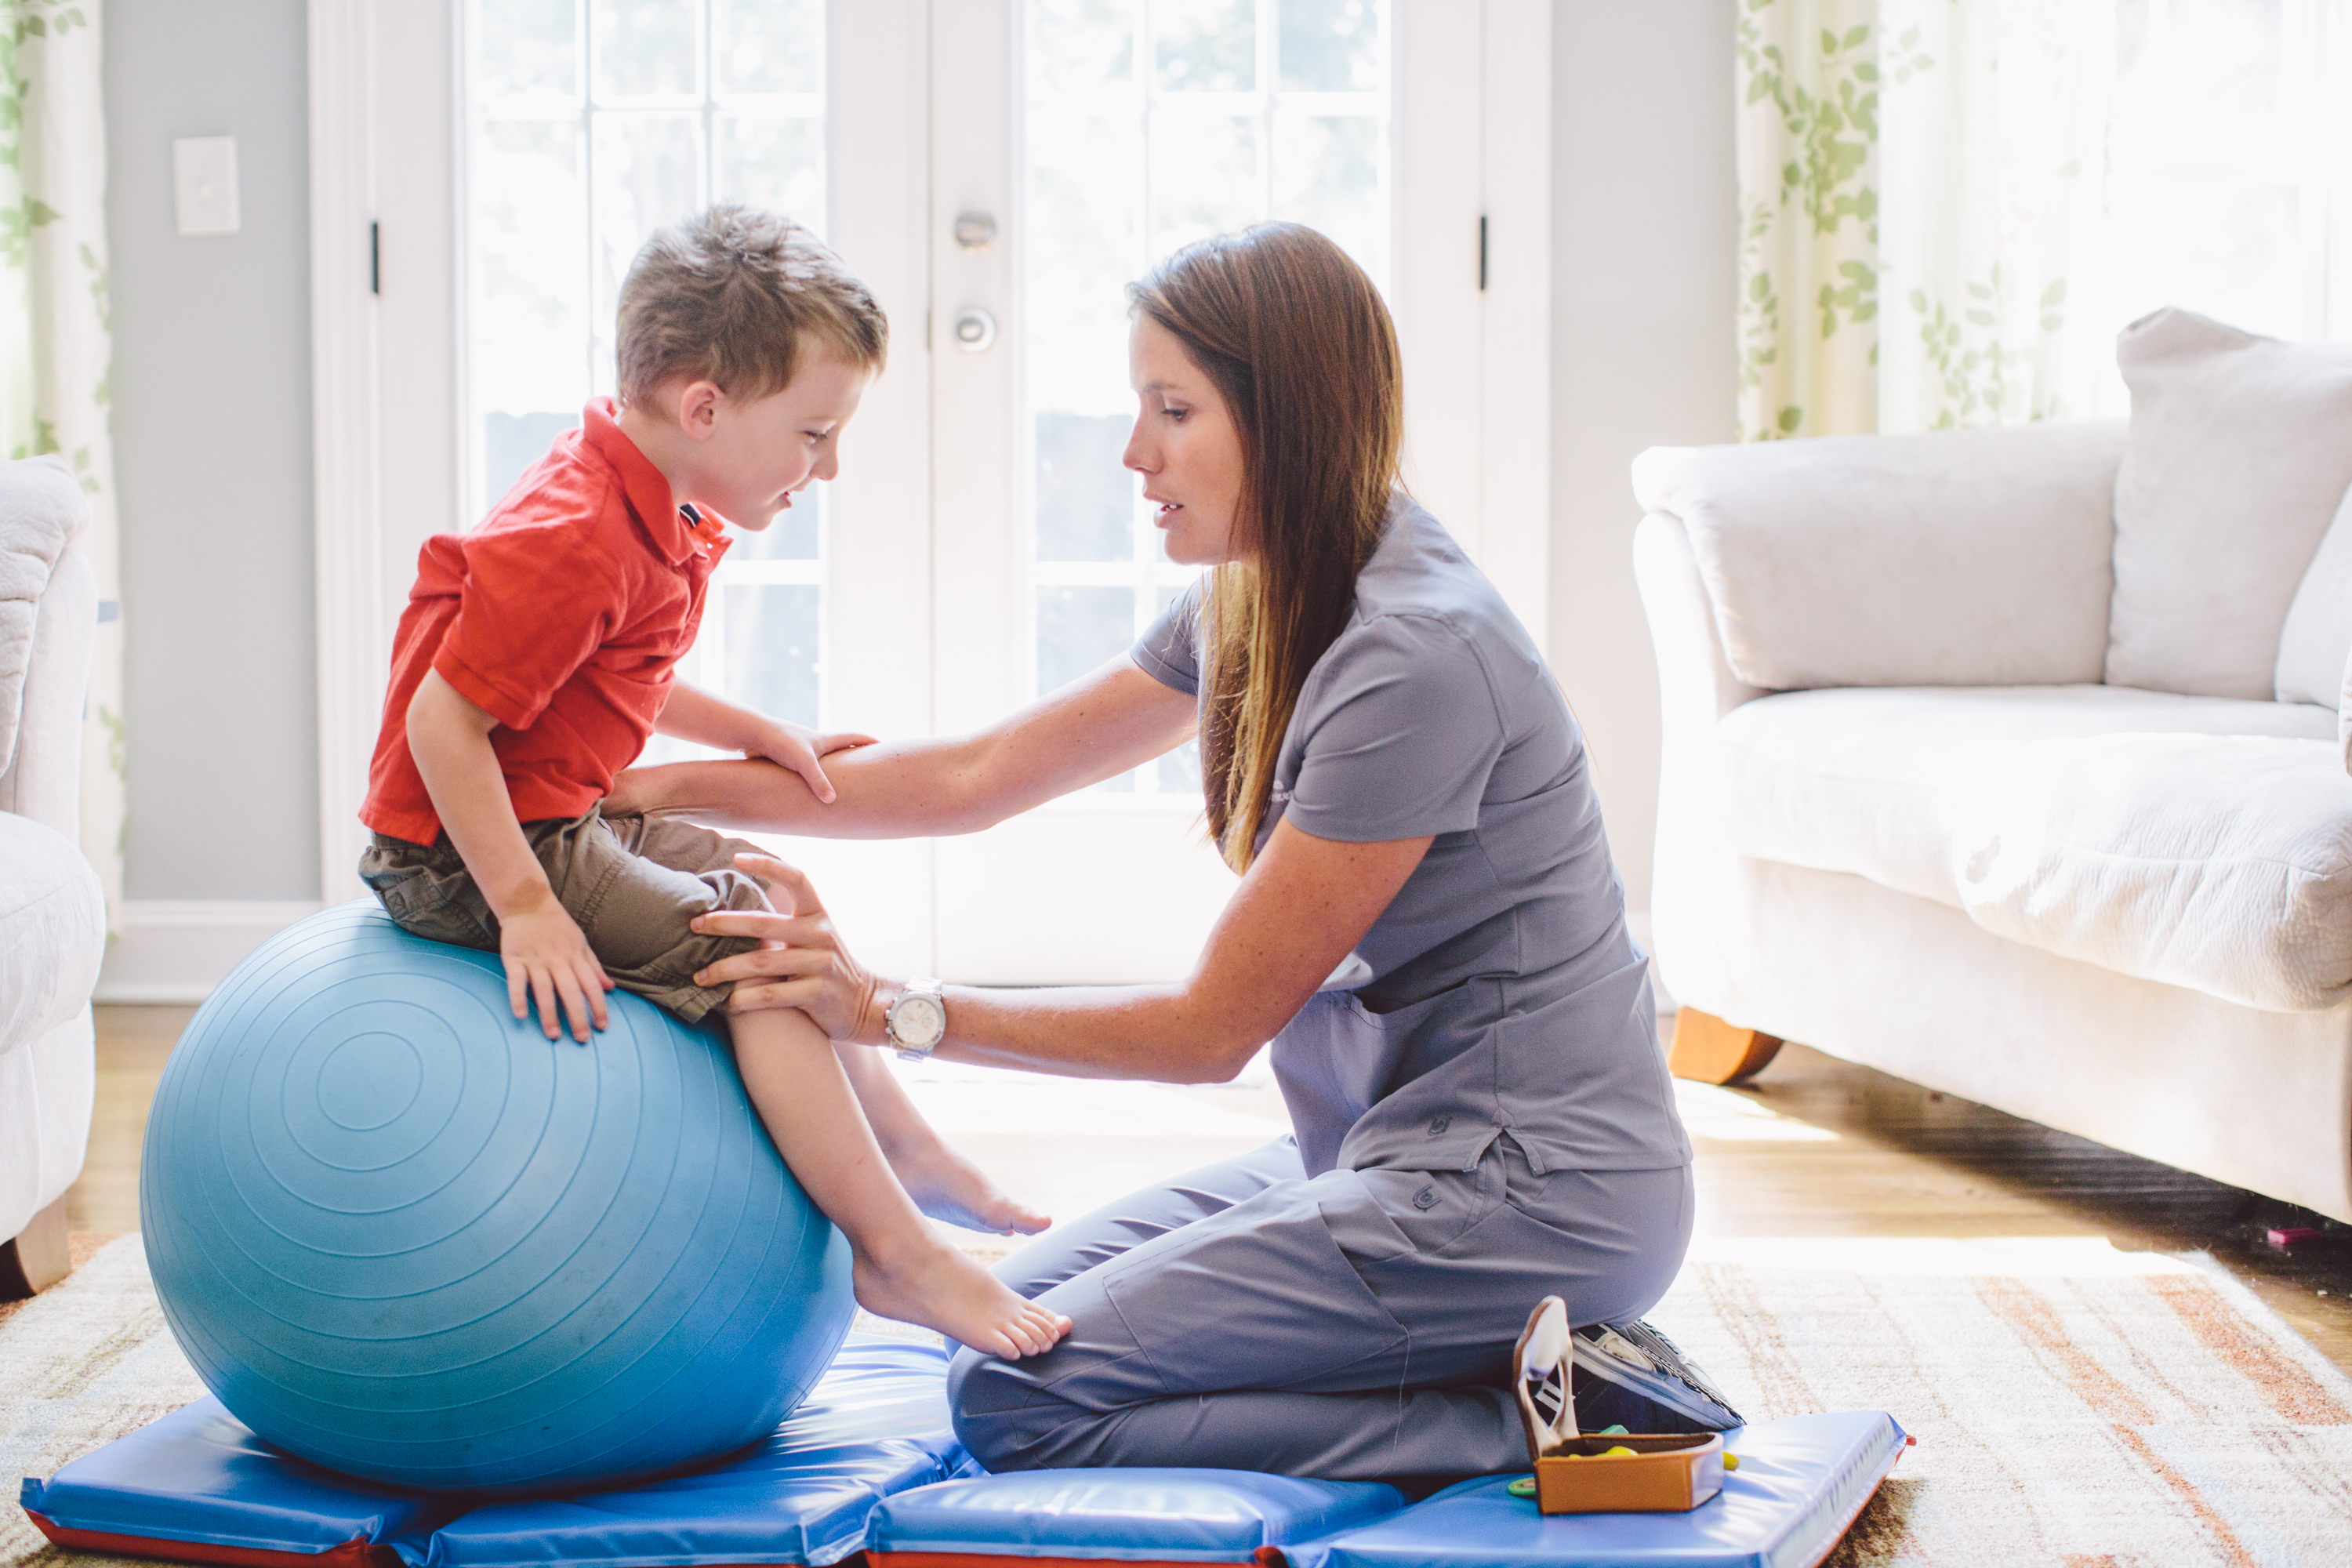 Tri County Therapy | Physical Therapy, Speech Therapy, Occupational Therapy, Pediatric Therapy, Greenville, Charleston